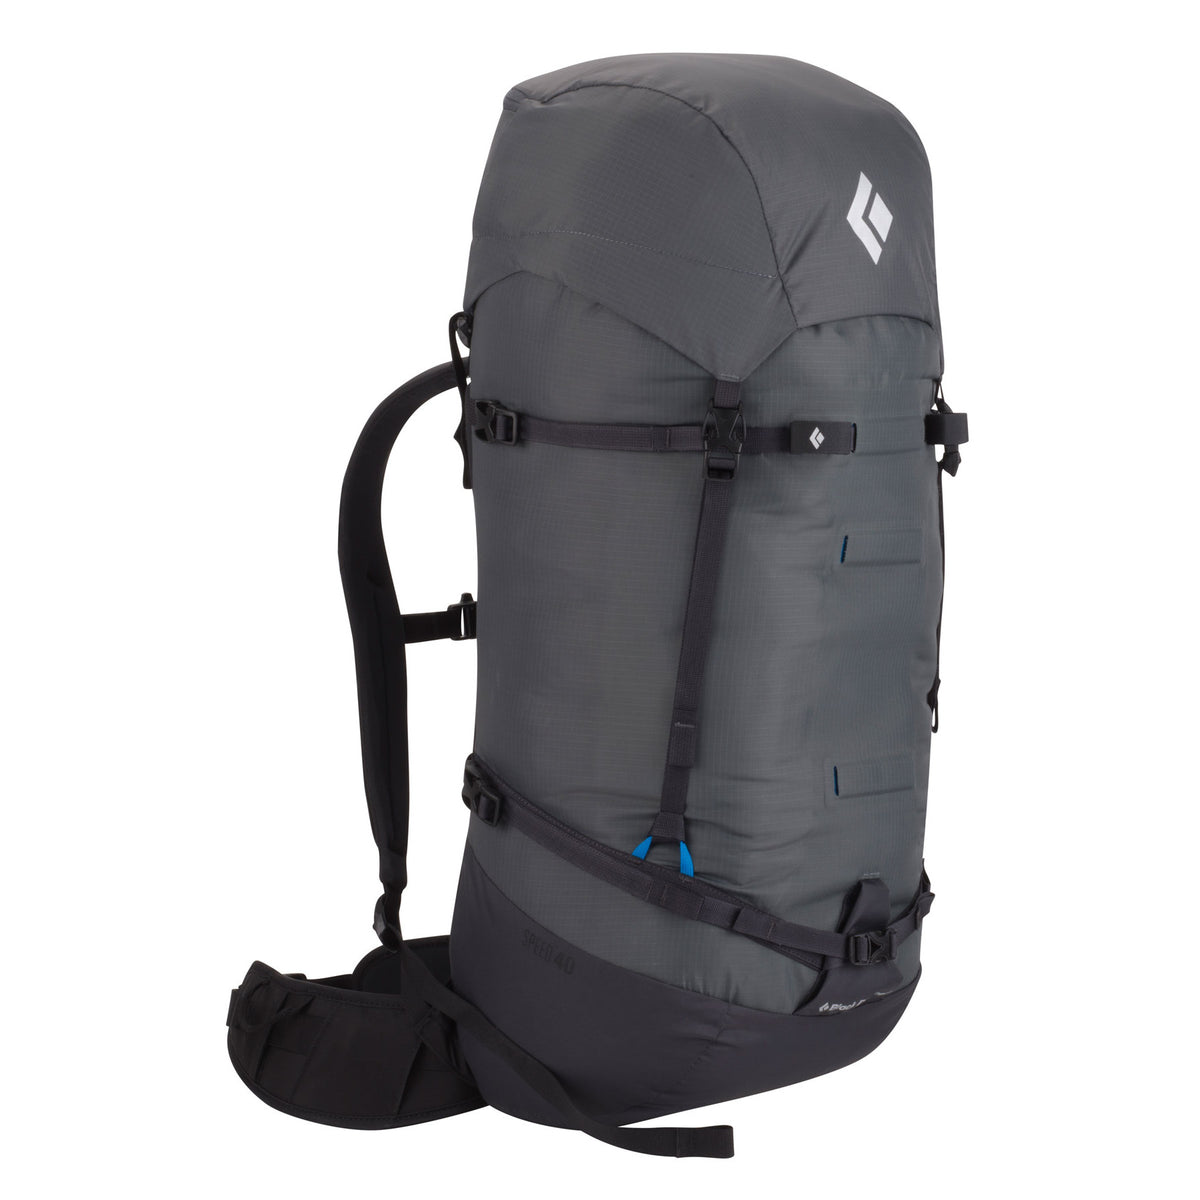 Black Diamond Speed 40 backpack, front/side view in grey and black colours